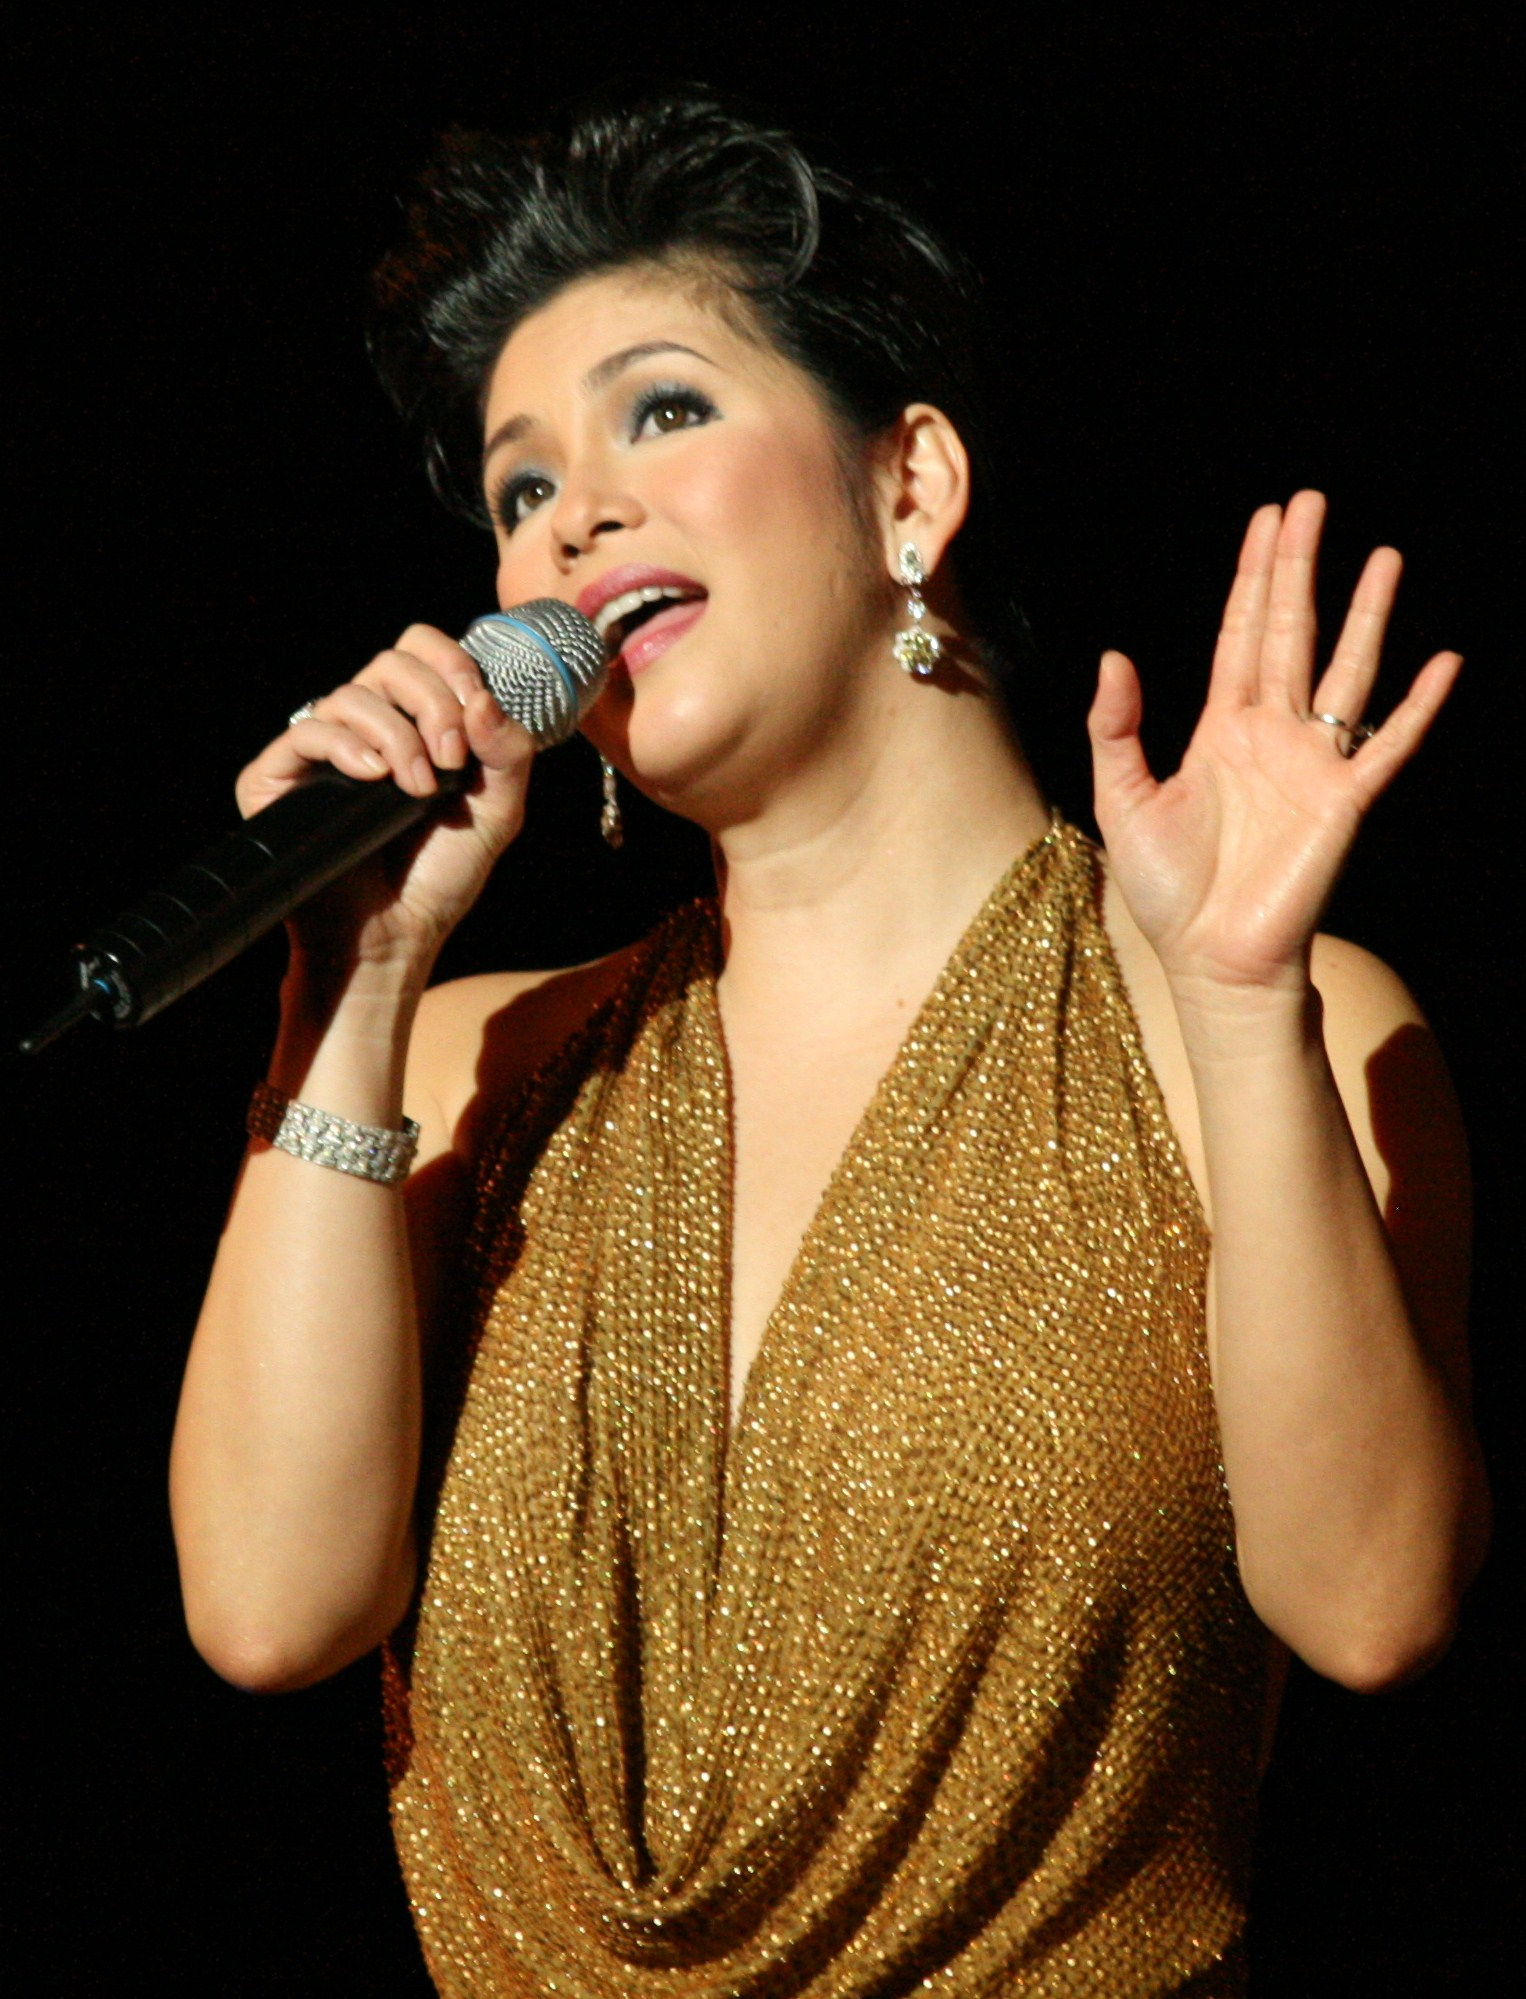 photo Regine Velasquez (b. 1970)